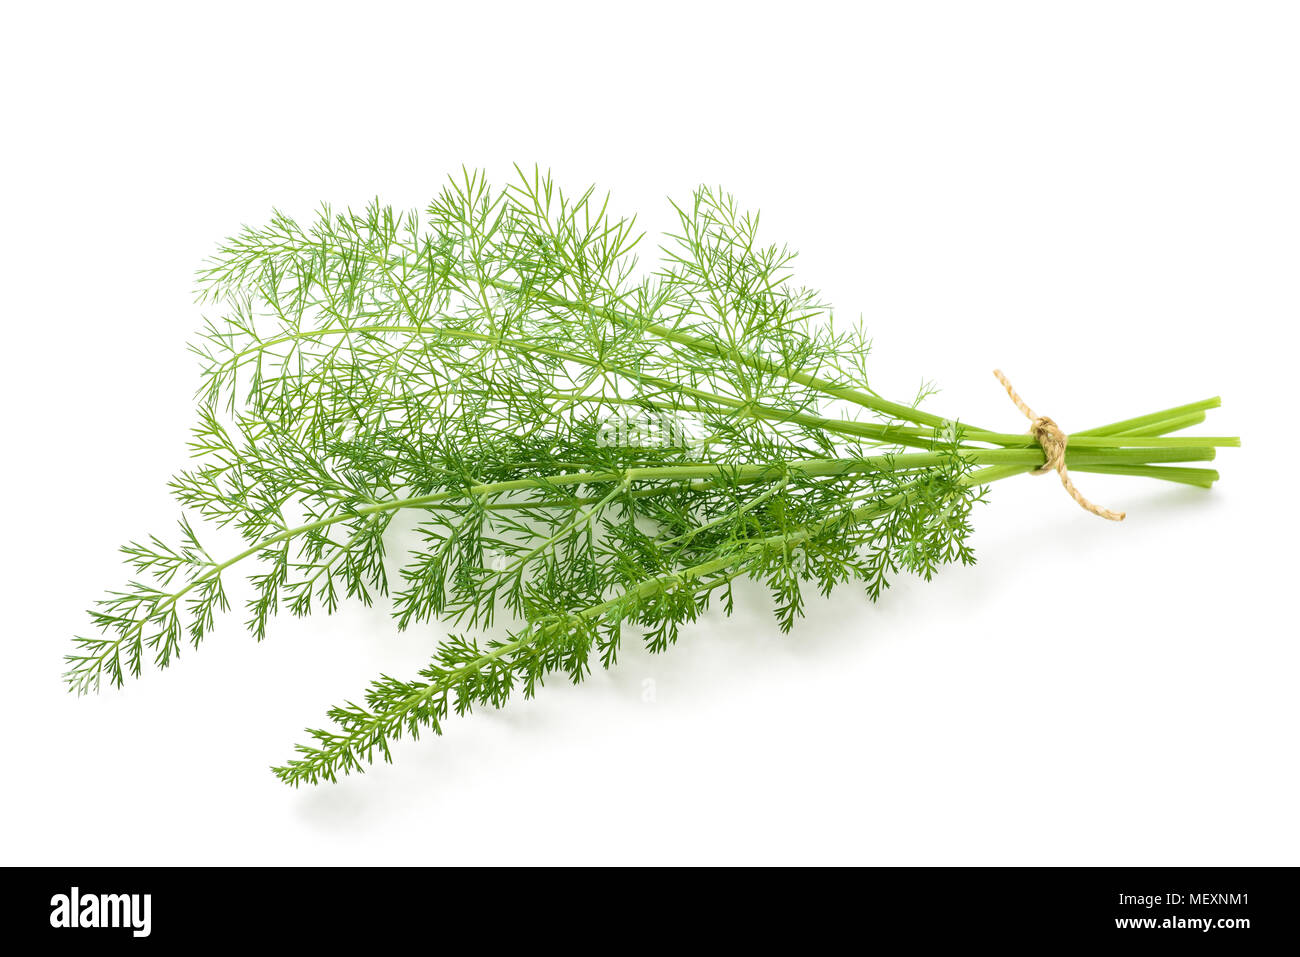 Wild fennel bunch isolated on white background - Stock Image